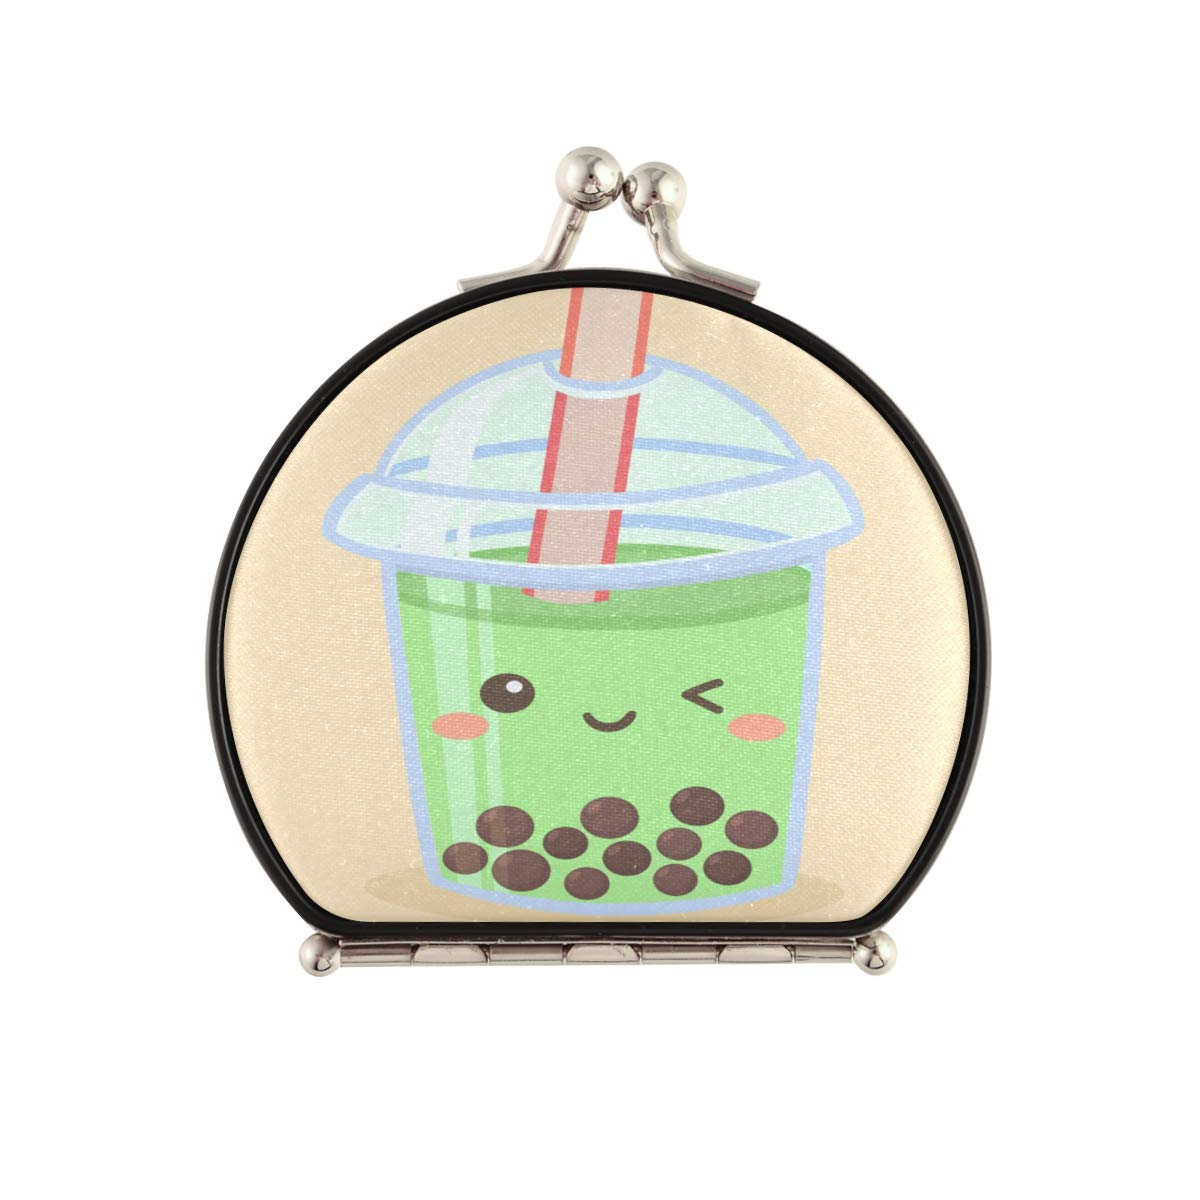 Magnifying Compact Cosmetic Mirror Mail order Super sale Cute Boba Dr Green Bubble Tea